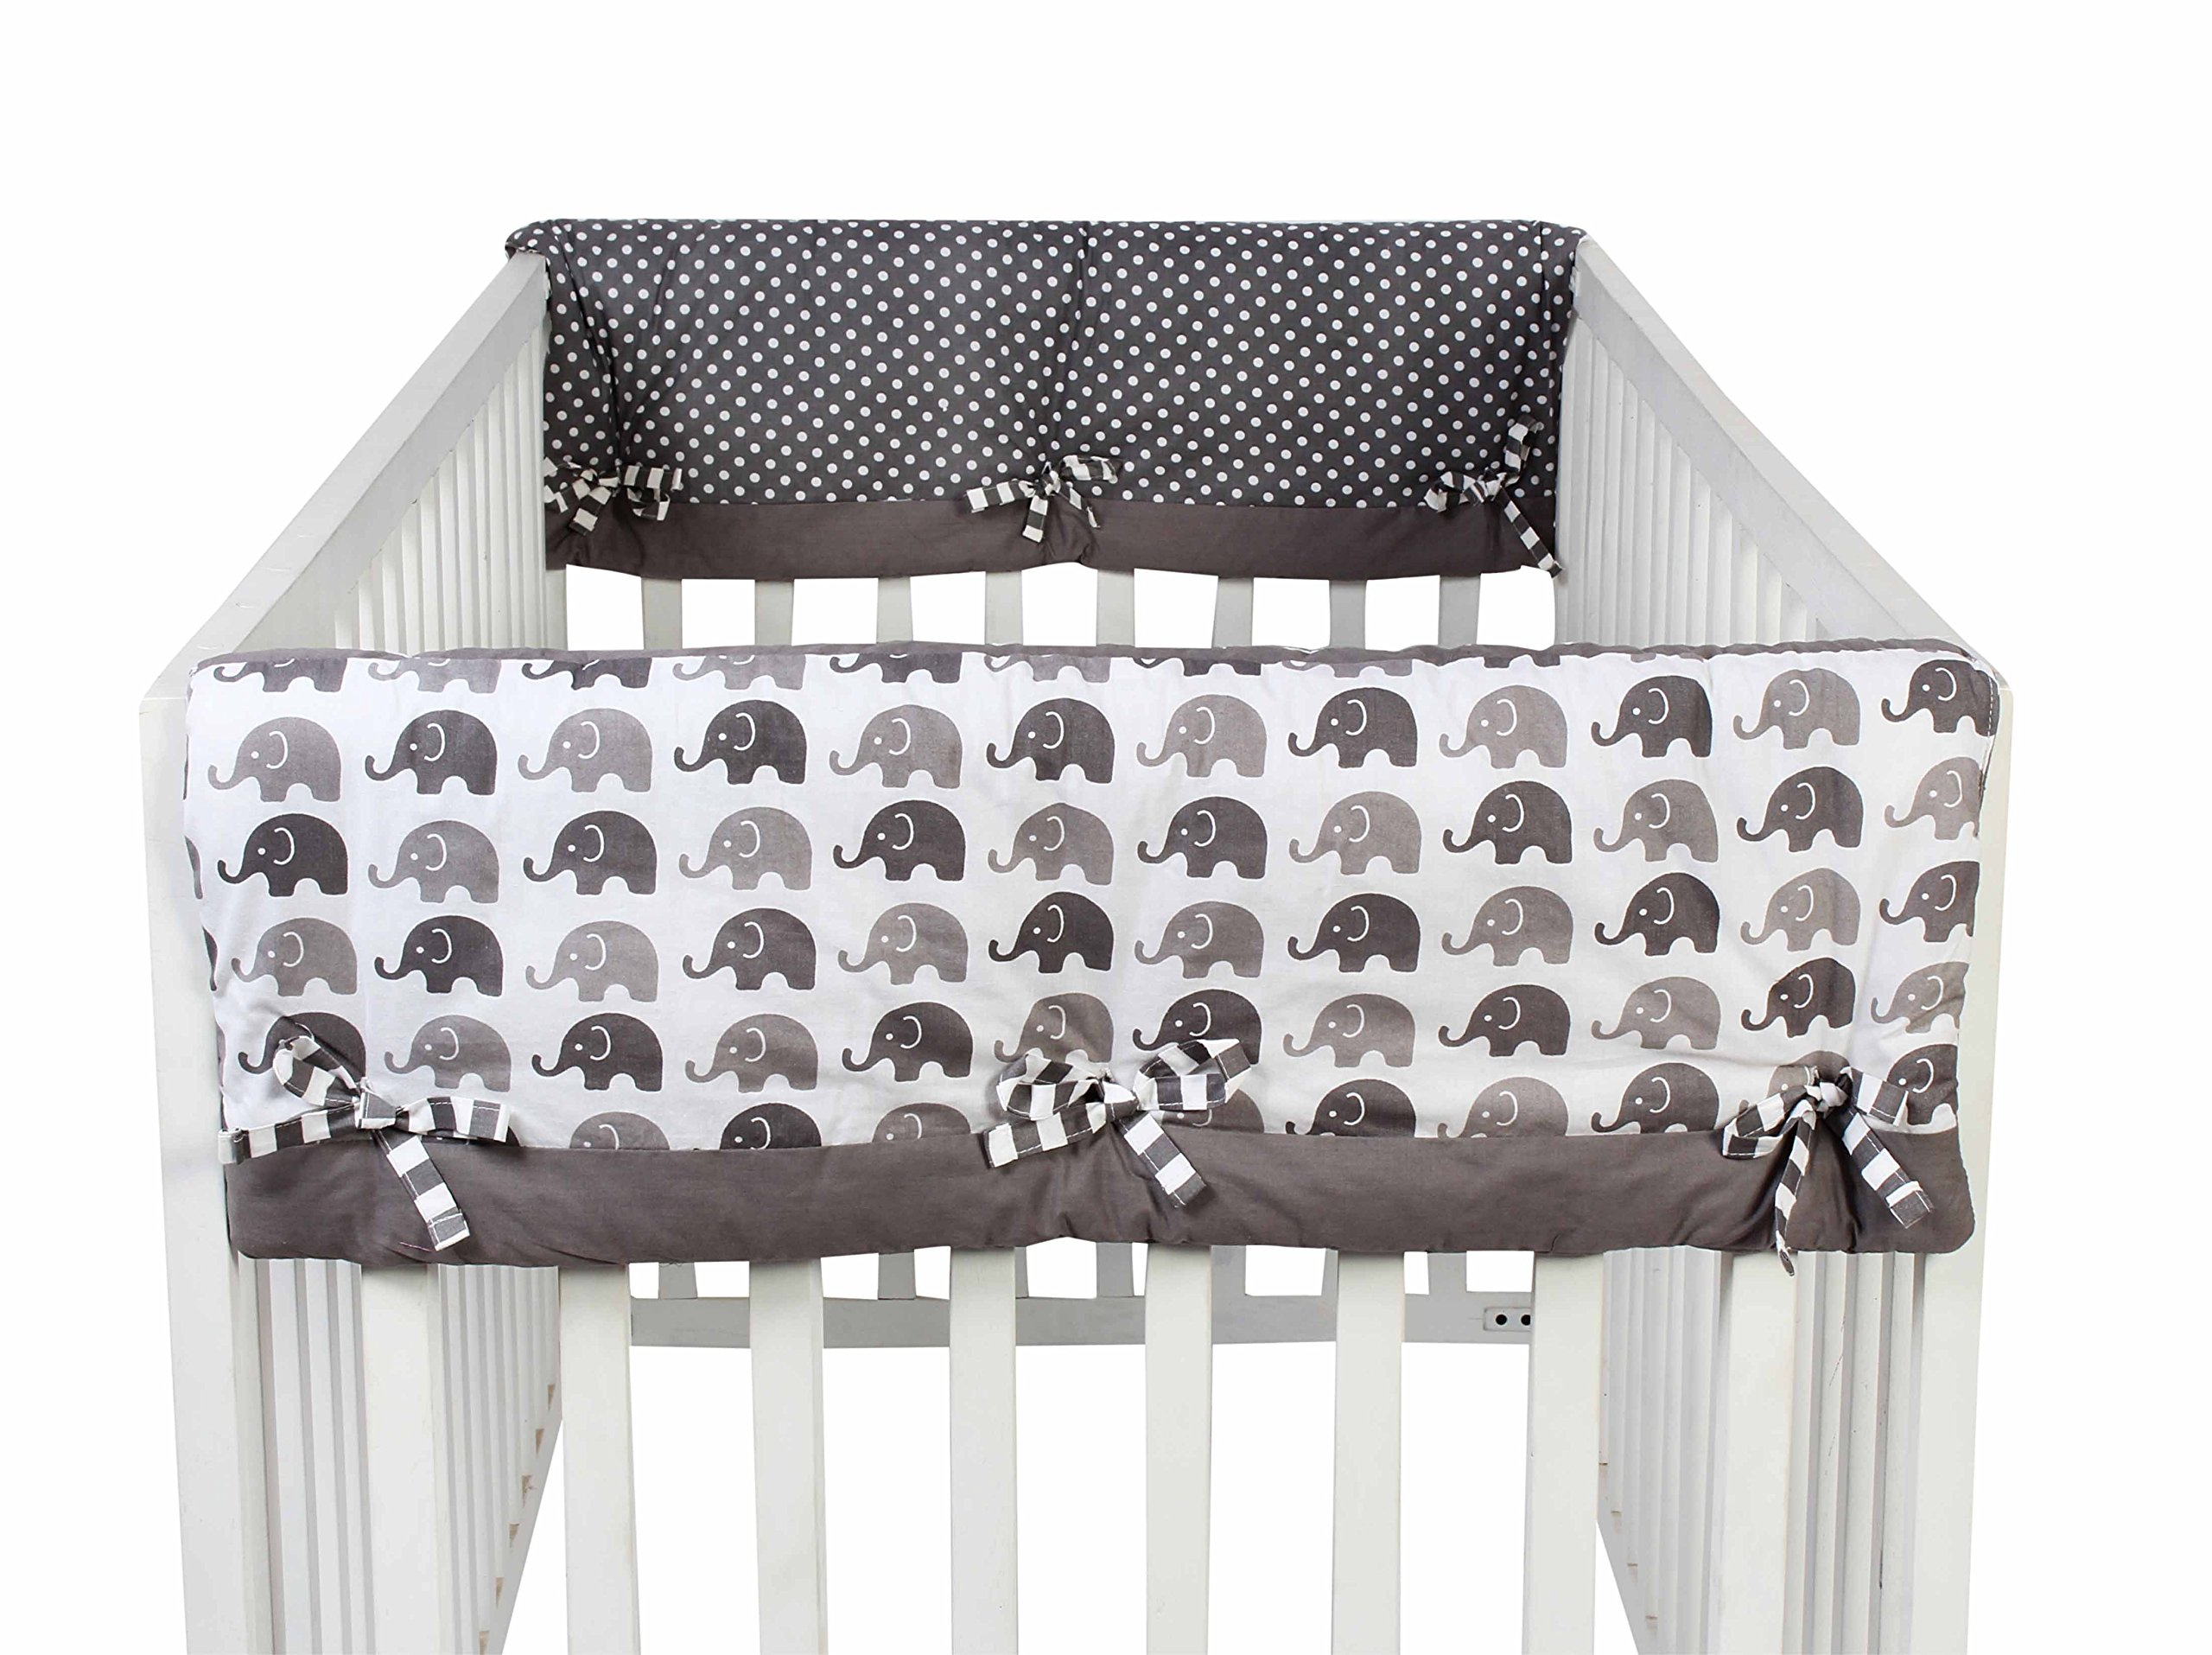 Bacati Elephants Unisex 2 Piece Crib Rail Guard Cover Sides for US Standard Cribs, Grey by Bacati